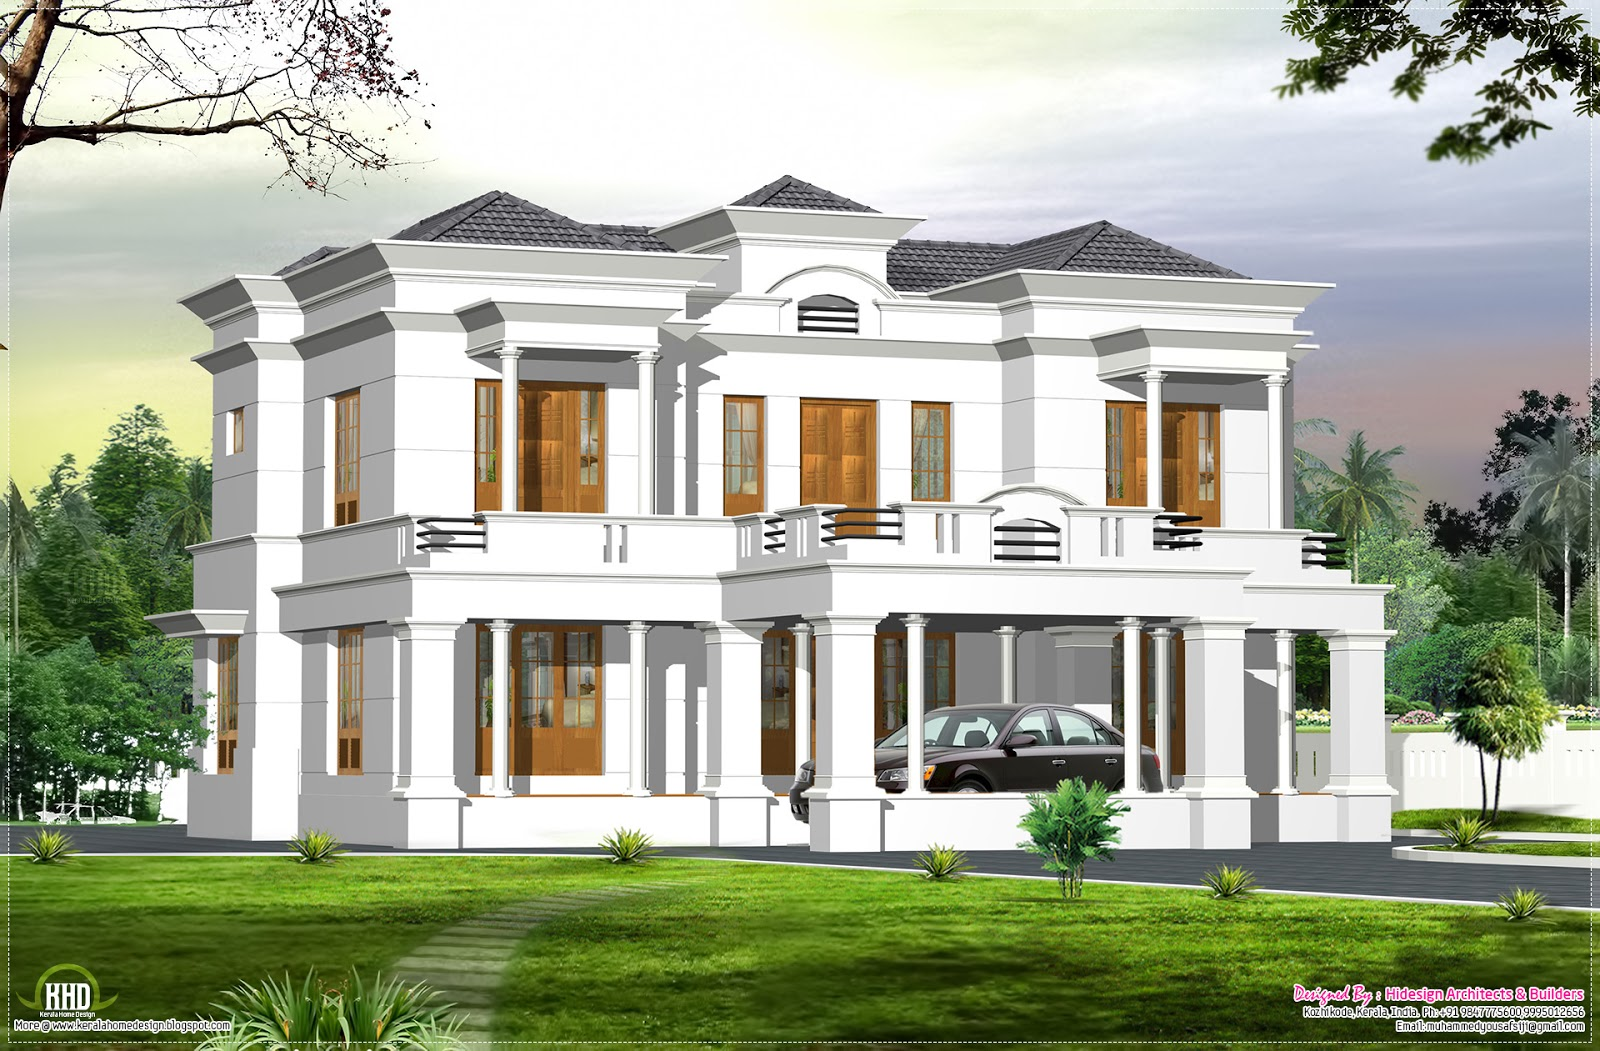 single storied house plans kerala storied home plans ideas picture elevations an english style bedroom kerala bungalow home elevation